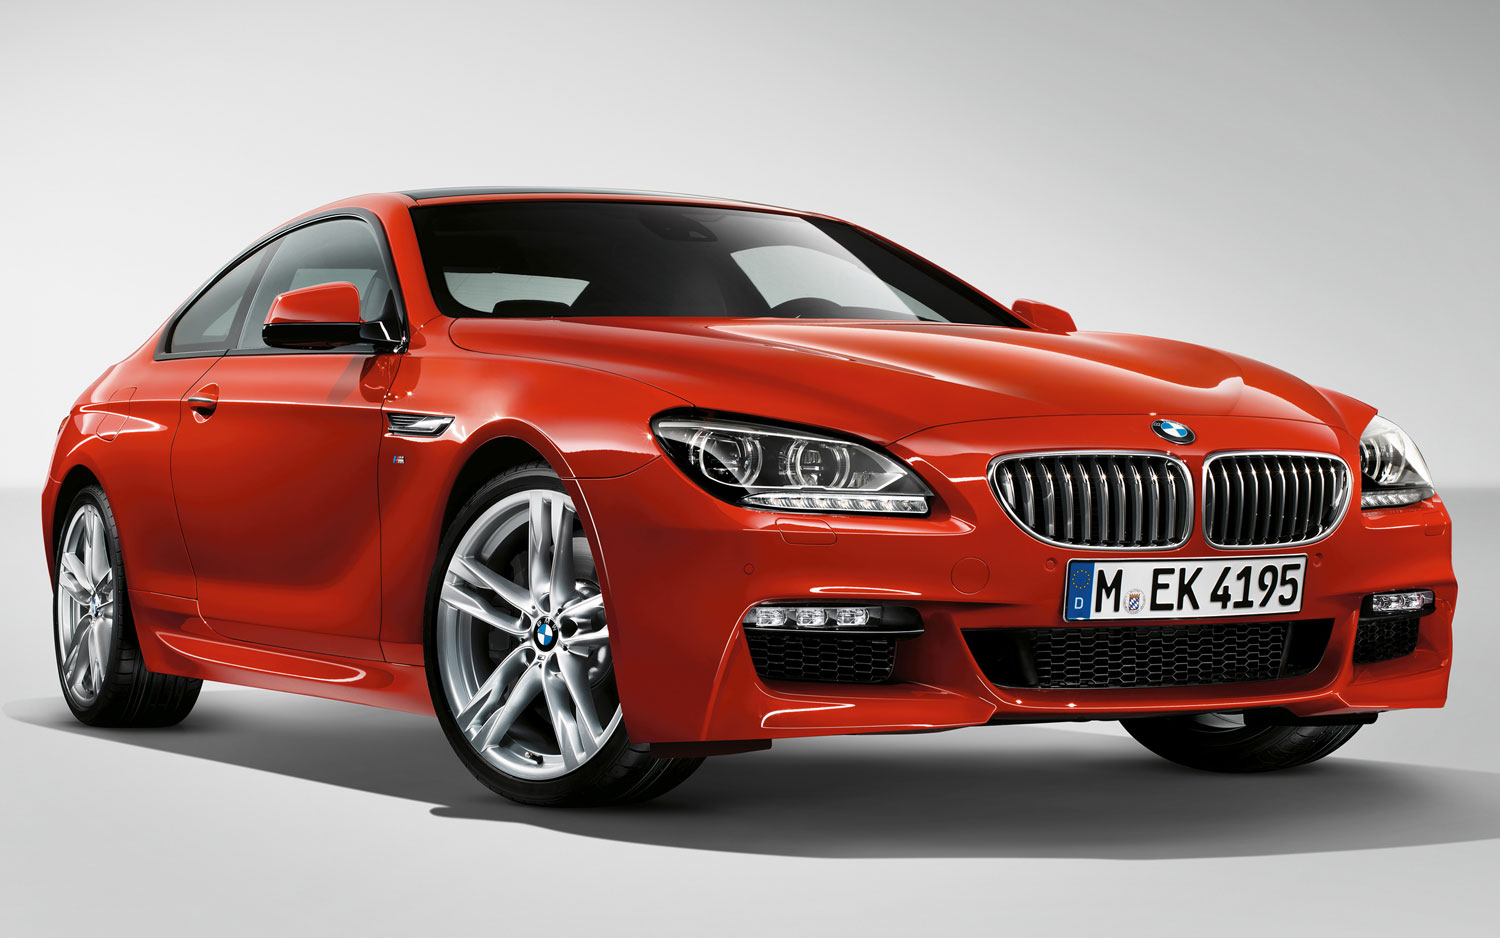 2014 BMW 6 Series M Sport Edition Offers More Features, Style